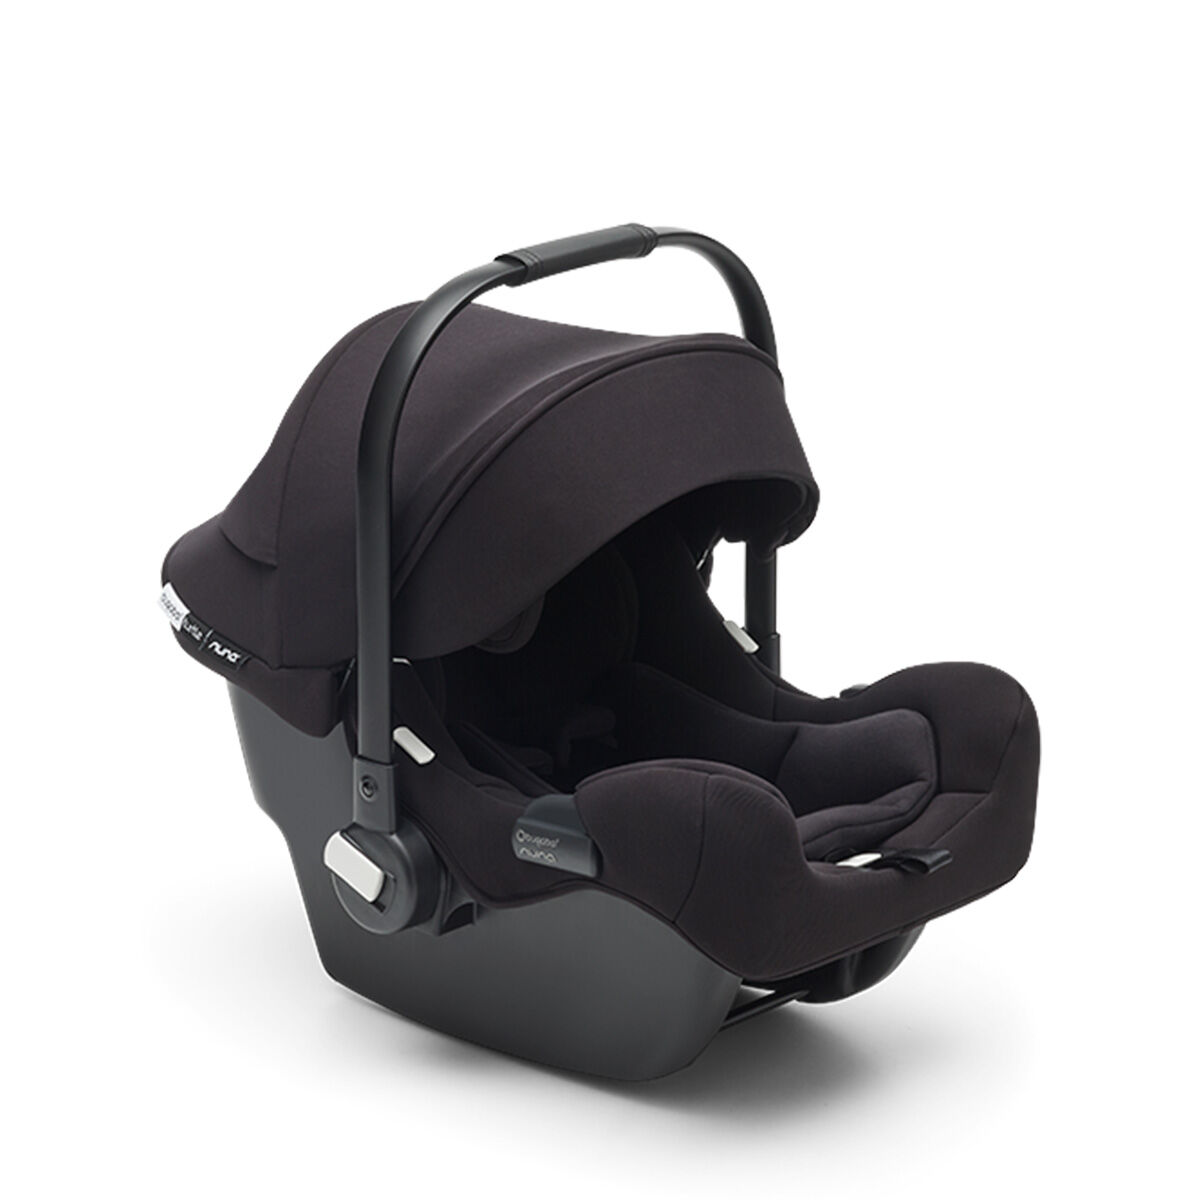 Bugaboo essential accessories | Shop now | Bugaboo US